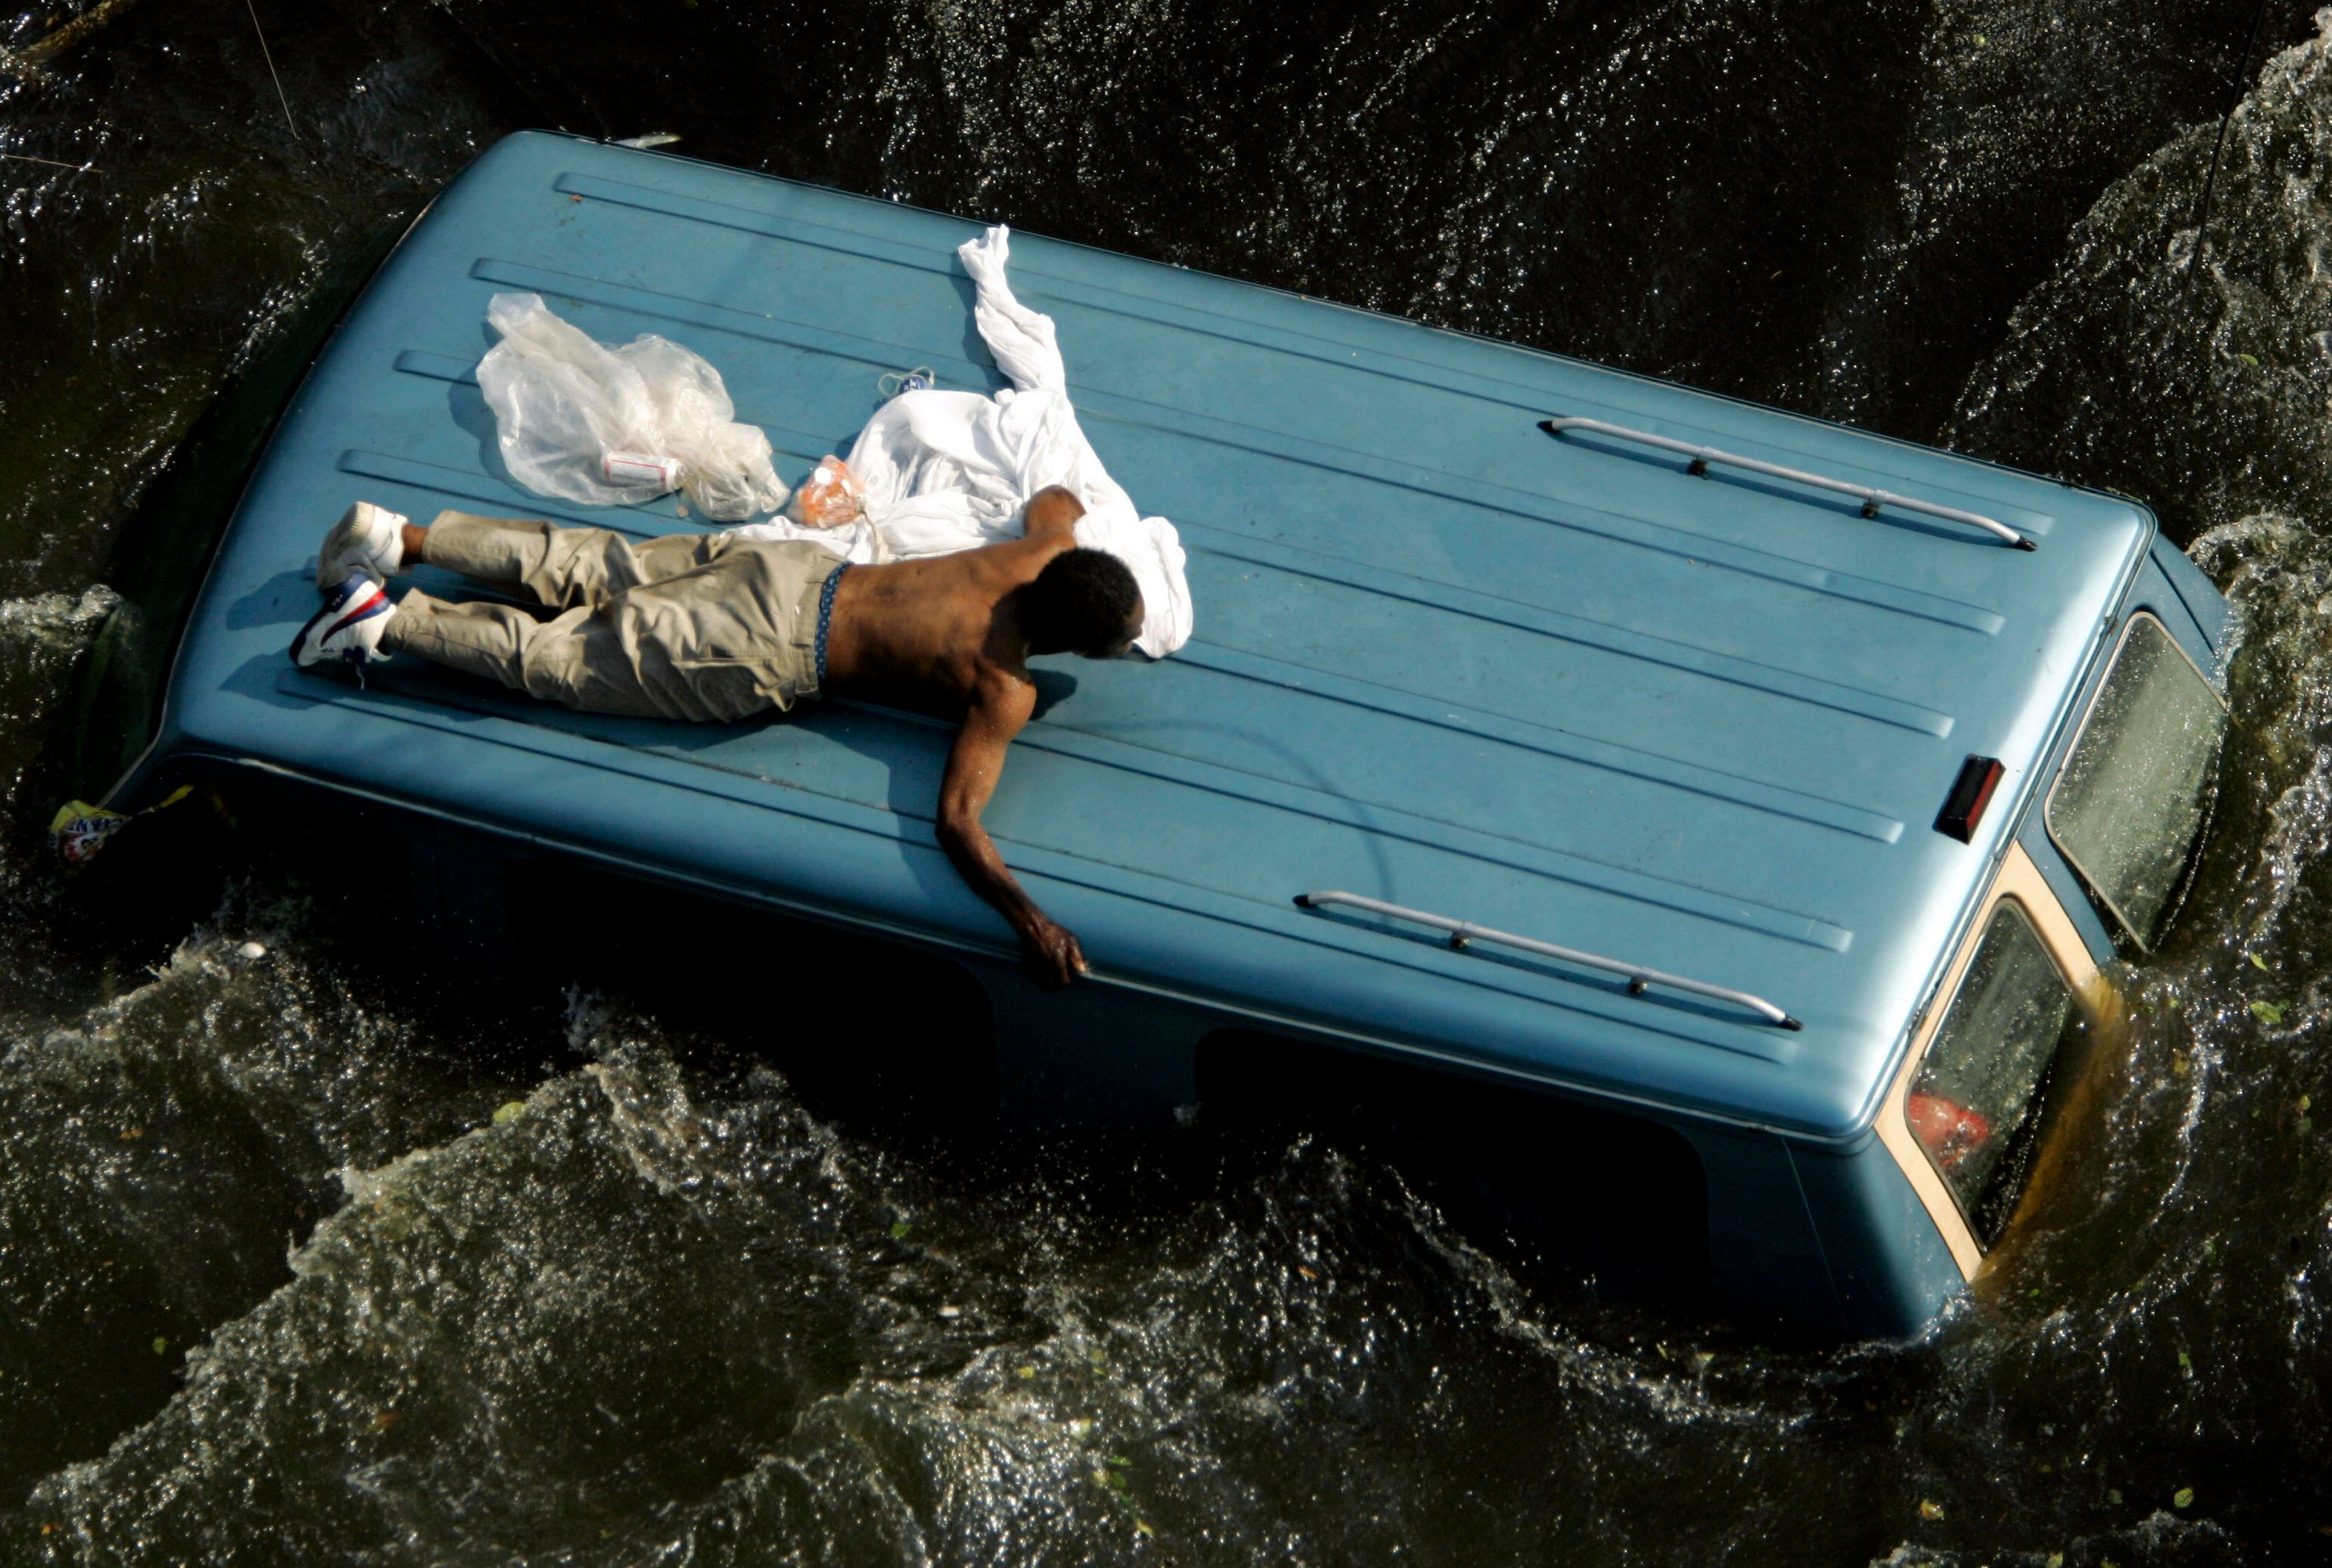 "A man clings to the top of a vehicle before being rescued by the U.S. Coast Guard from the flooded streets of New Orleans, in the aftermath of Hurricane Katrina, in Louisiana in this September 4, 2005 file photo.   Robert Galbraith: I arrived in New Orleans three days after the hurricane struck, and was flown via a Coast Guard four-seat airplane from Alexander, Louisiana to the U.S. Coast Guard Station in New Orleans.  Unable to see anything other than the death and destruction visible through the open door, we began circling and descending and suddenly I saw a man, dressed in khakis, tennis shoes and shirtless, looking desperately toward us from the top of the van in rising flood water. With the helicopter rotating closer, he rolled to his side and clung to the top of the vehicle.   Moments later a rescue swimmer loaded him into a basket and he was raised into the helicopter. We then flew to Louis Armstrong Airport, where he was placed on a stretcher and provided medical attention.  It was odd to see someone, six days after the hurricane struck, sitting on top of the van, a tall can of Budweiser beer and a broom nearby, visible in other pictures that were filed. When he entered the helicopter, he asked of my camera ""What's that?""   The story had a major impact on me personally. I've covered many disasters - massive fires, floods, riots, earthquakes - but Hurricane Katrina was beyond category in what I had previously experienced. When I returned home I was in the process of moving, and didn't watch television or connect my telephone for a couple of months.  REUTERS/Robert Galbraith/Files  (UNITED STATES - Tags: DISASTER TPX IMAGES OF THE DAY)  ATTENTION EDITORS - THIS PICTURE IS PART OF PACKAGE '30 YEARS OF REUTERS PICTURES'  TO FIND ALL 56 IMAGES SEARCH '30 YEARS'"